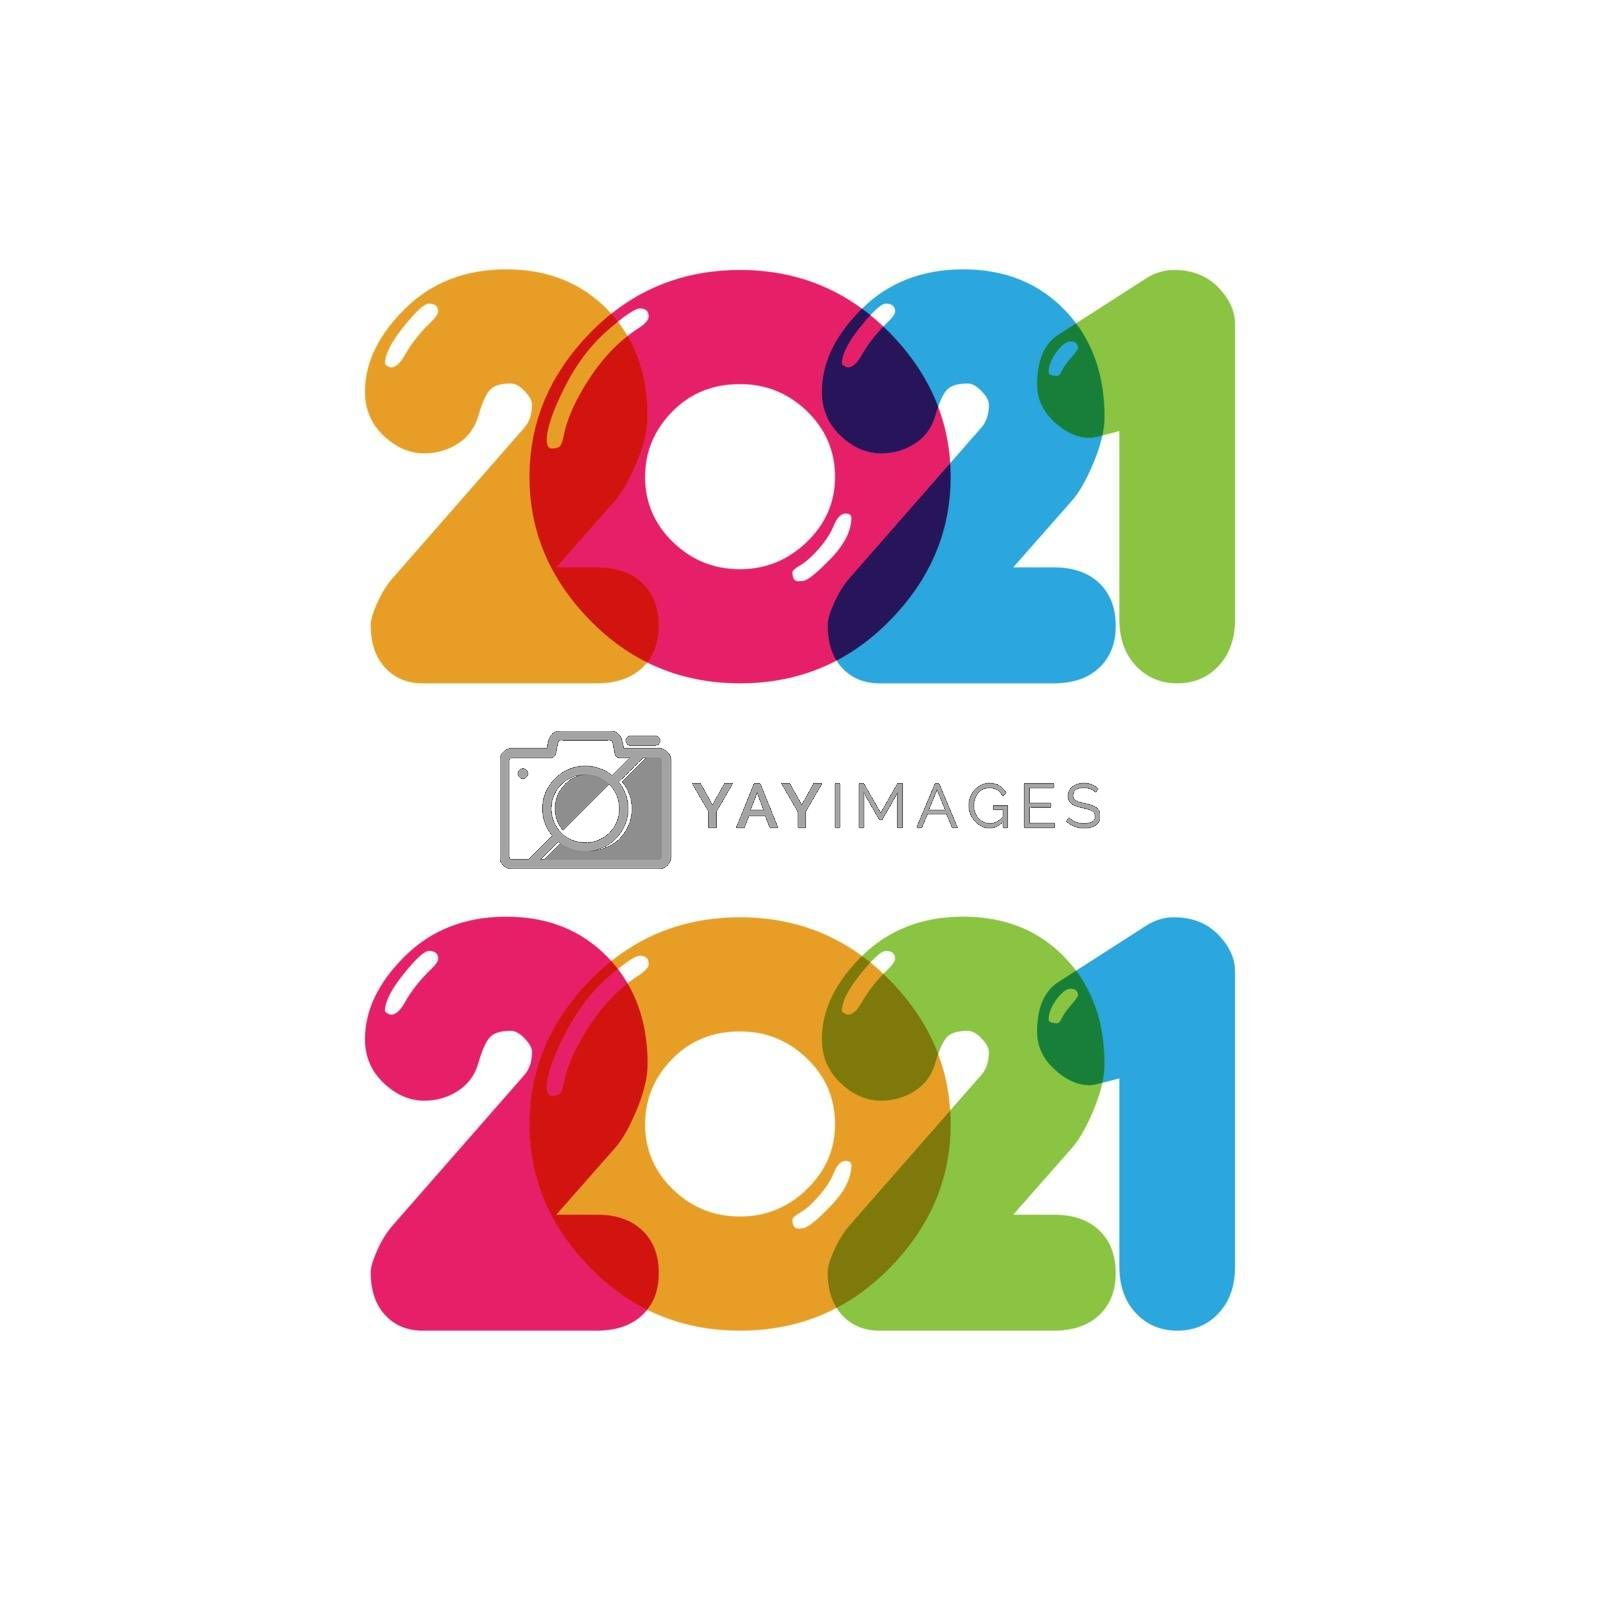 2021 new year icon vector illustration design template